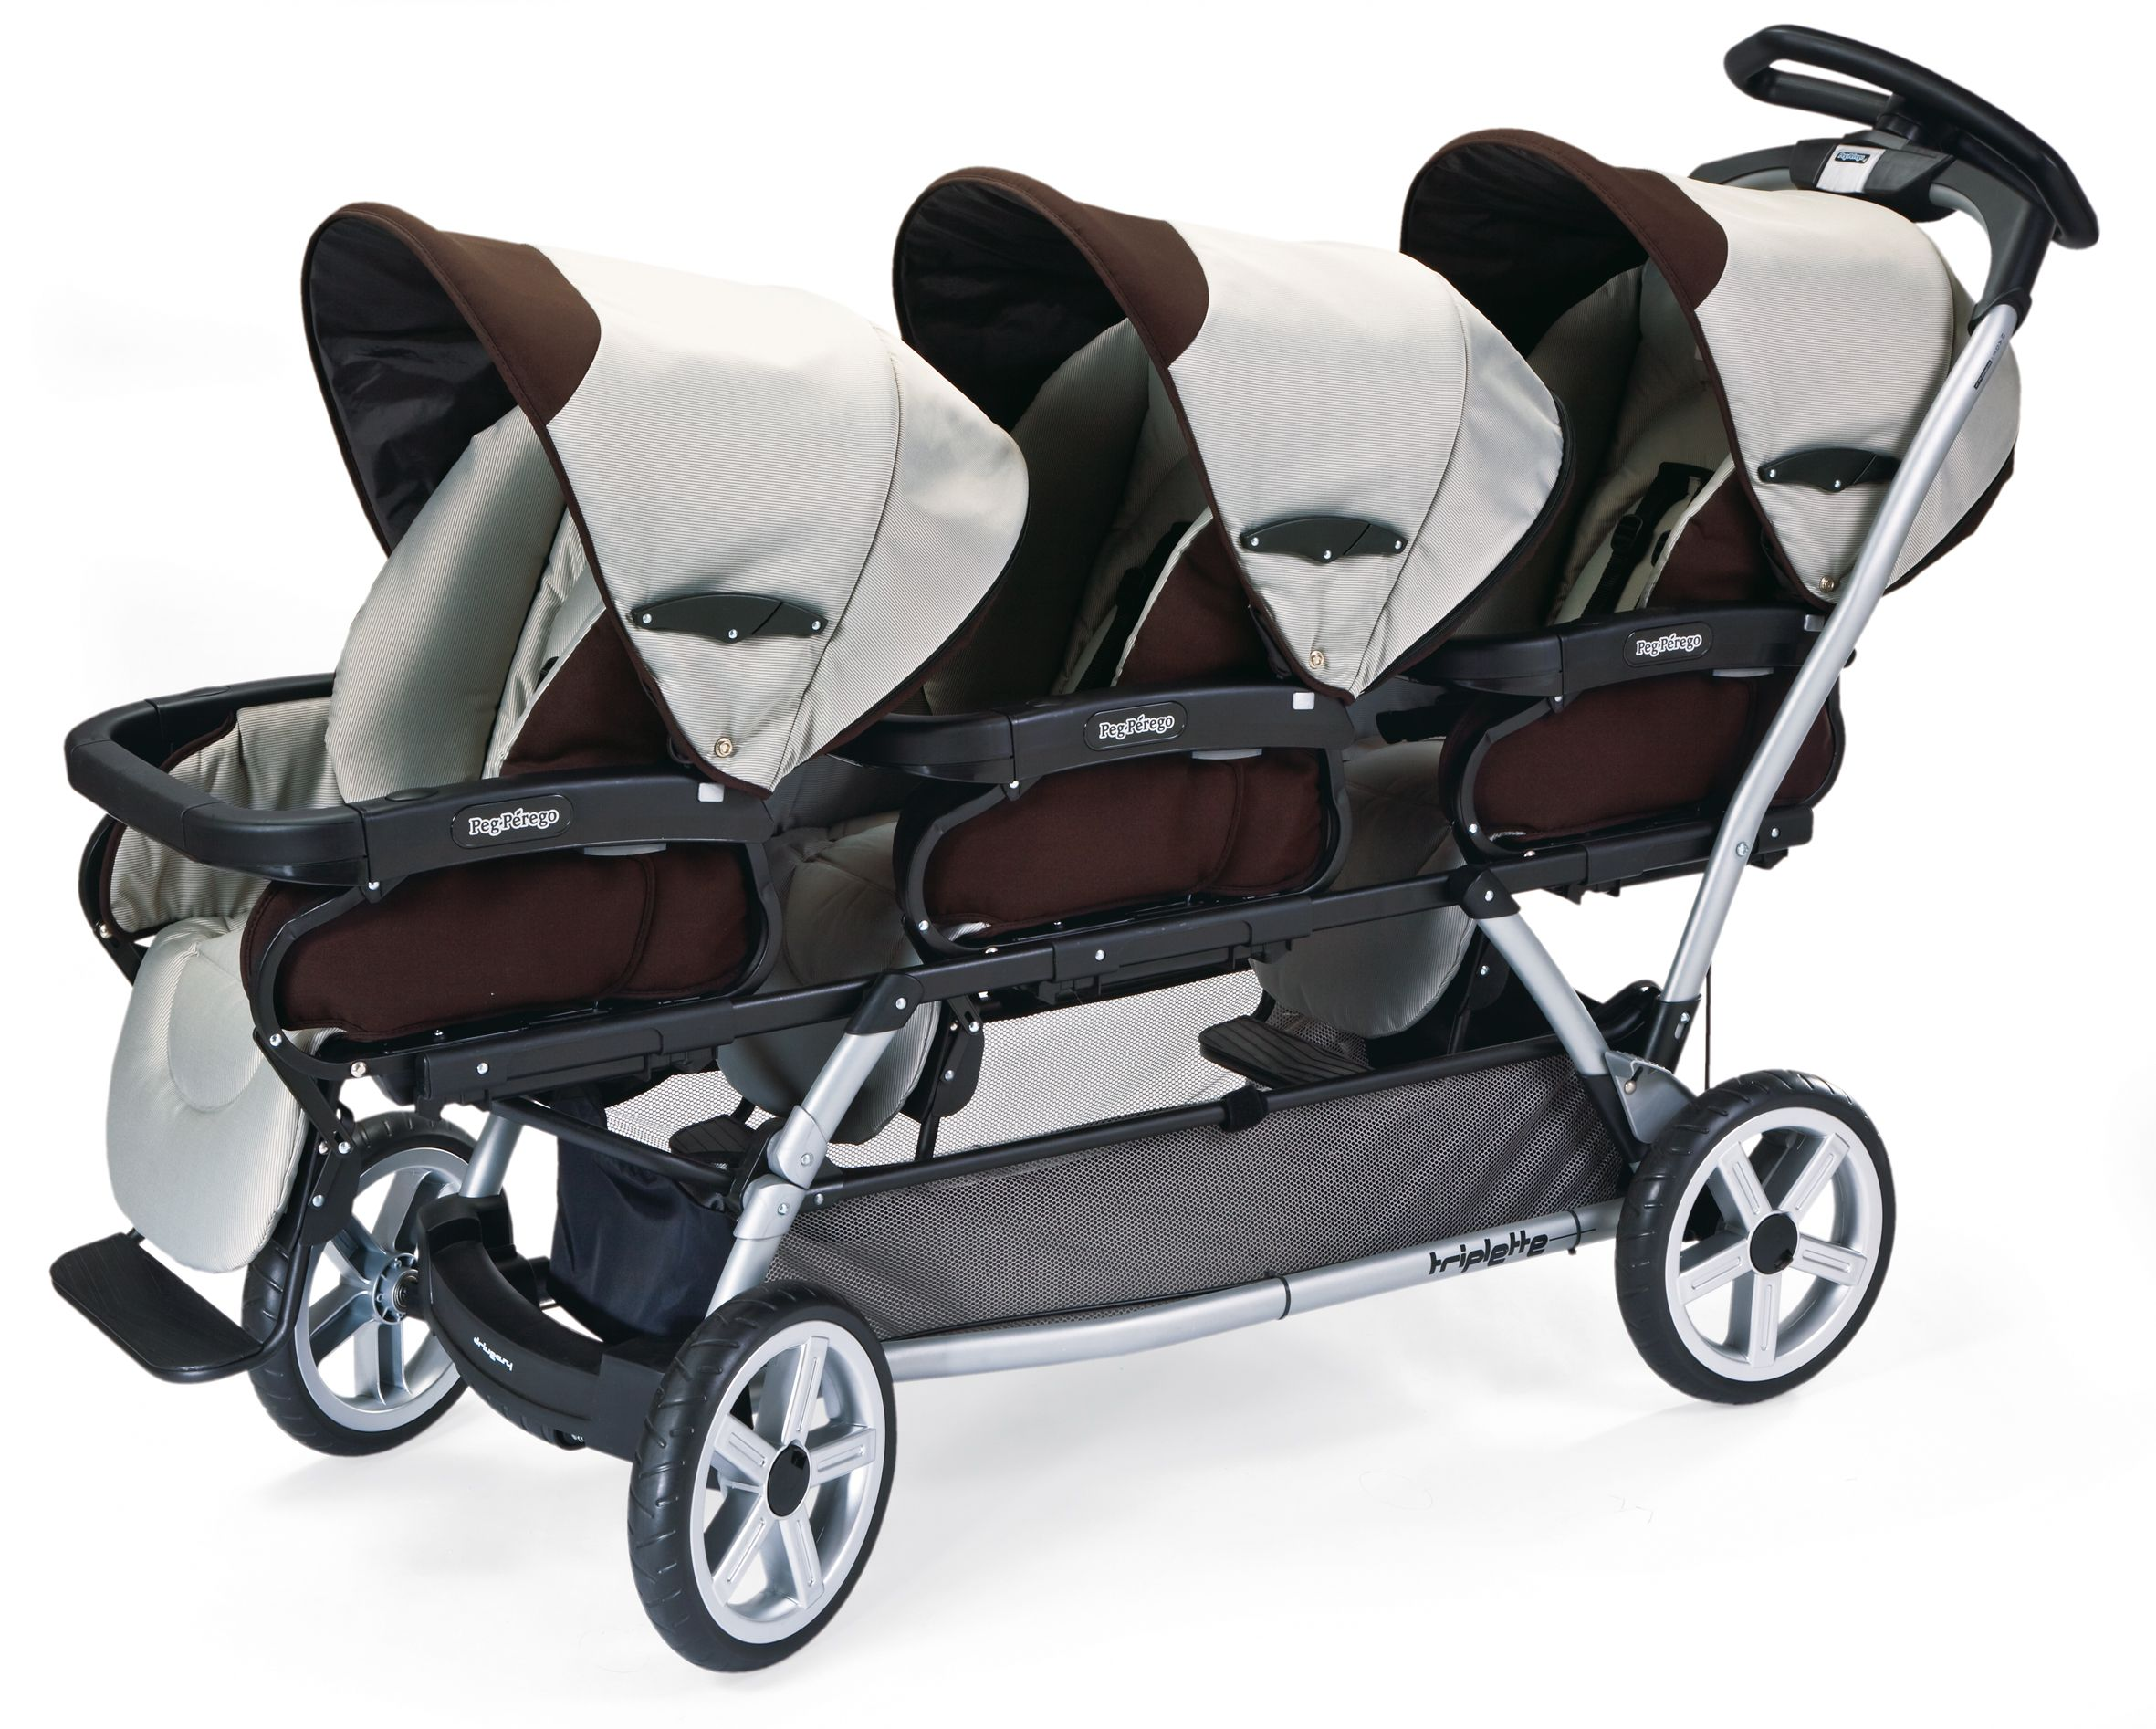 Peg Perego Stroller For Twins Peg Perego S Triplette Sw Stroller At 999 98 Has A Steering